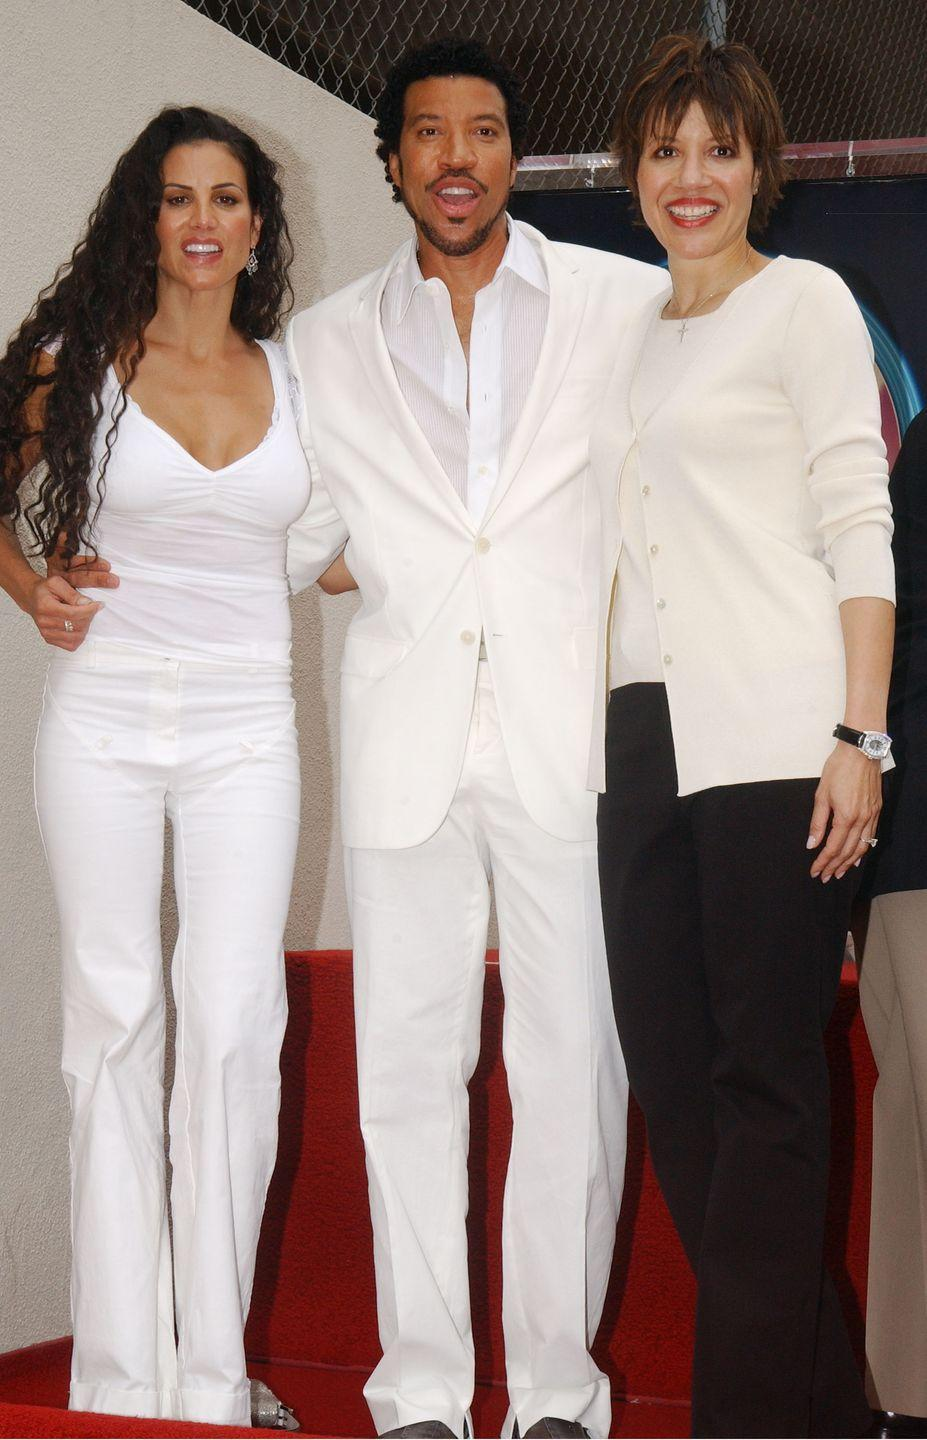 <p>It isn't just the all-white outfit: Lionel Richie and his sister Deborah Richie look a <em>lot </em>alike even when they're not dressed similarly. We'd have to credit their wide smiles for that. </p>